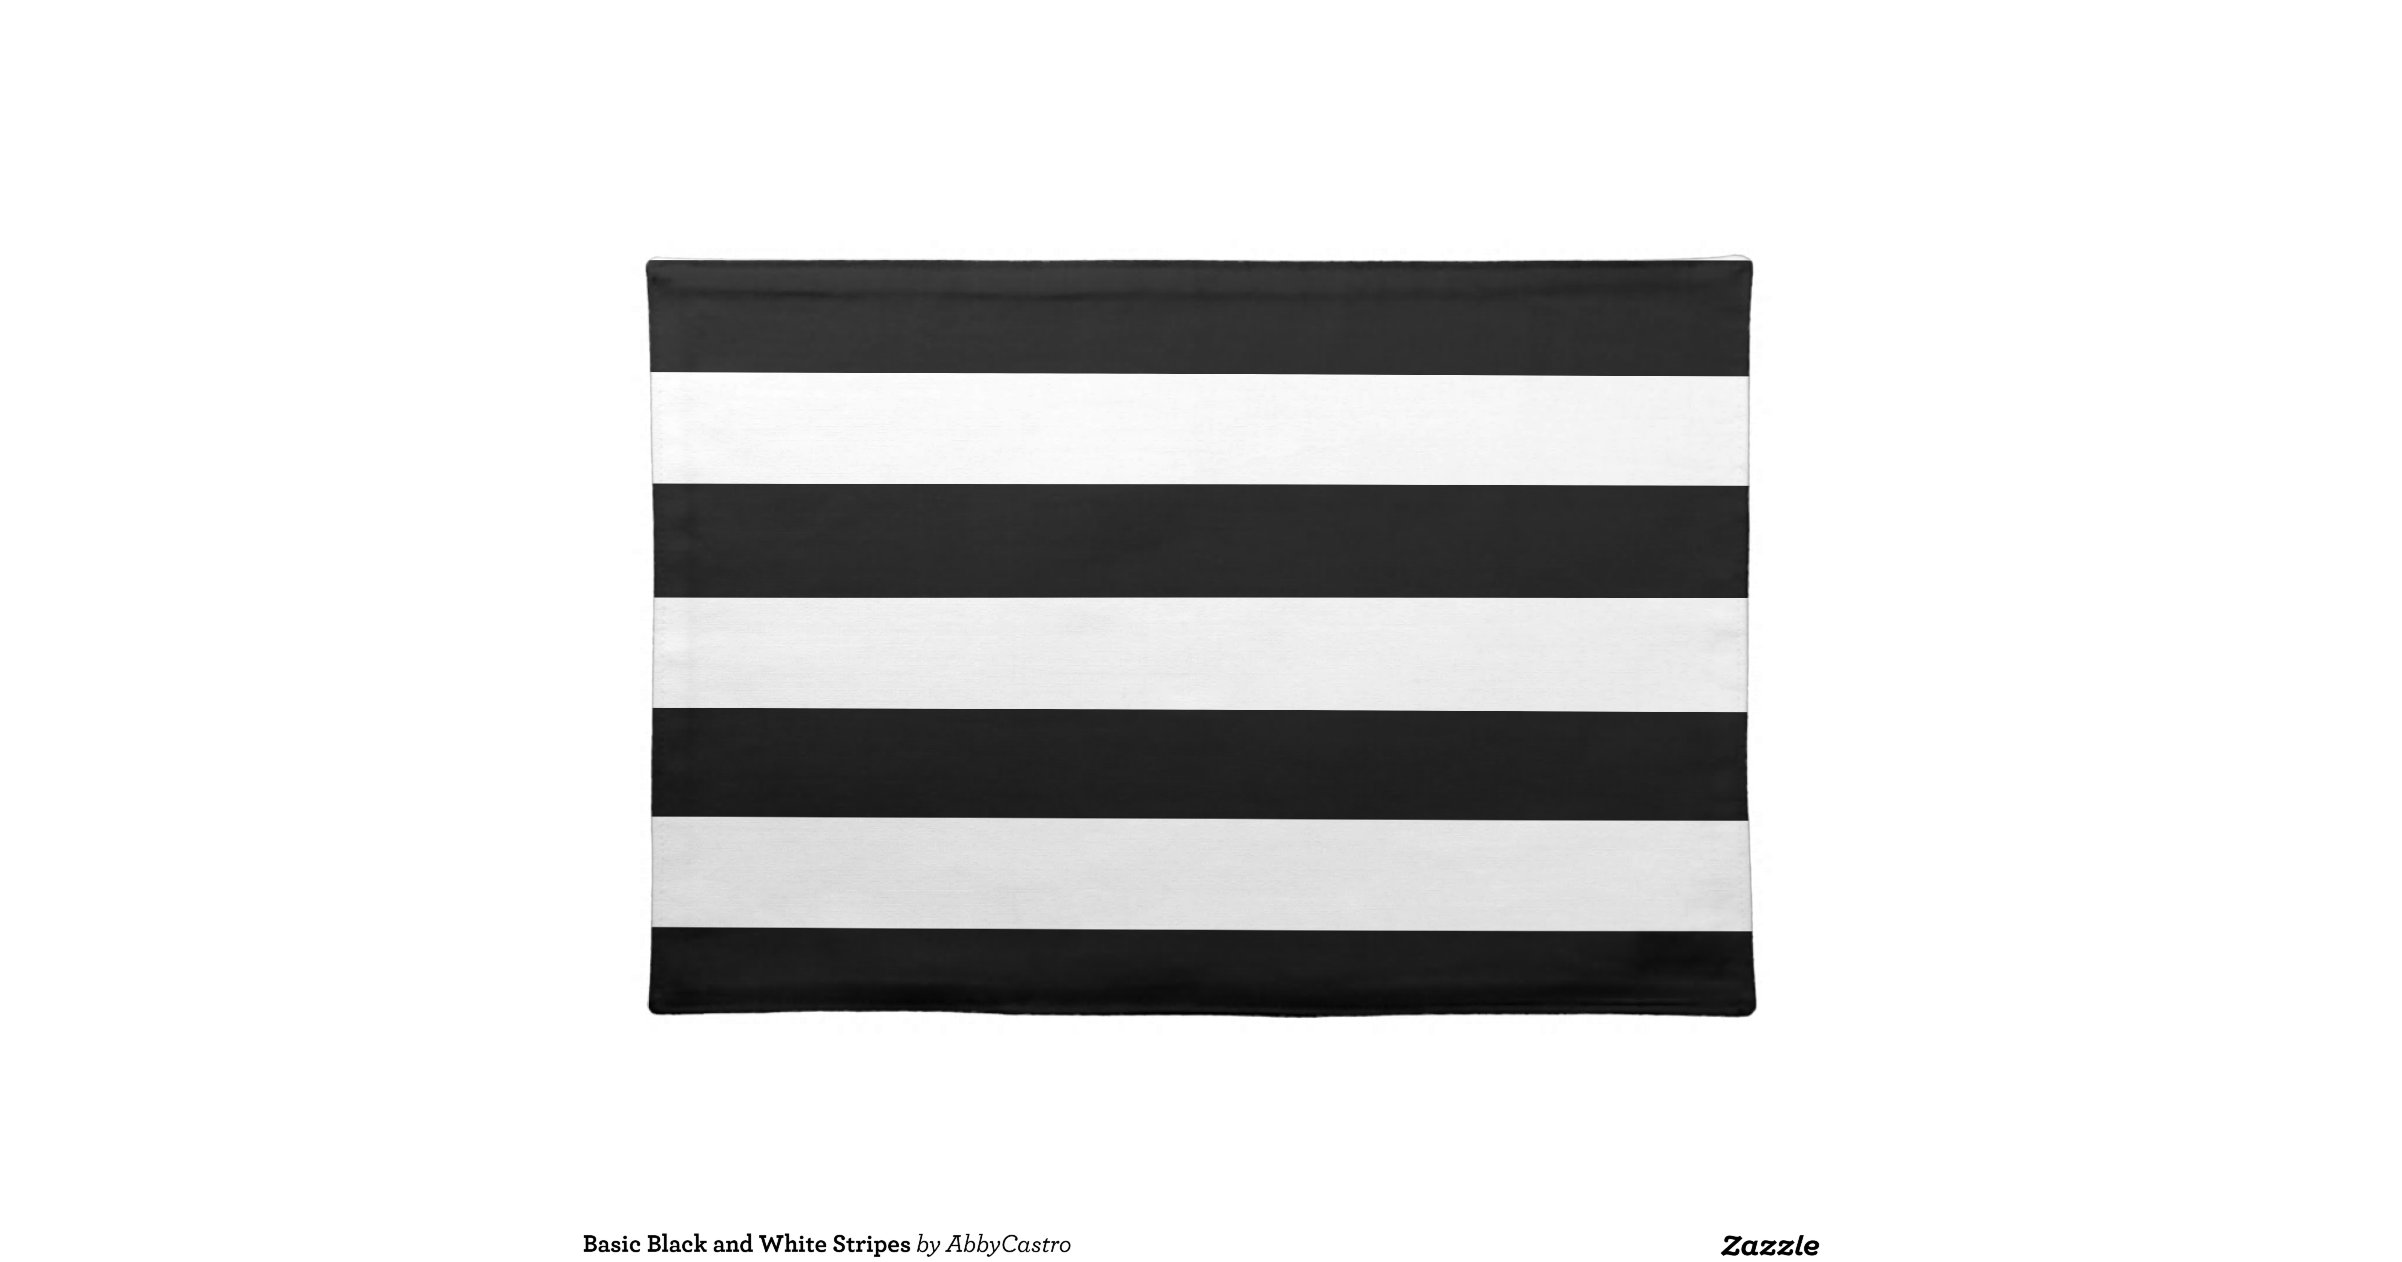 basic black and white stripes cloth placemat rbc287dc8ffcf4a30ad26173a5e56281f 2cfku 8byvr 1200. Black Bedroom Furniture Sets. Home Design Ideas